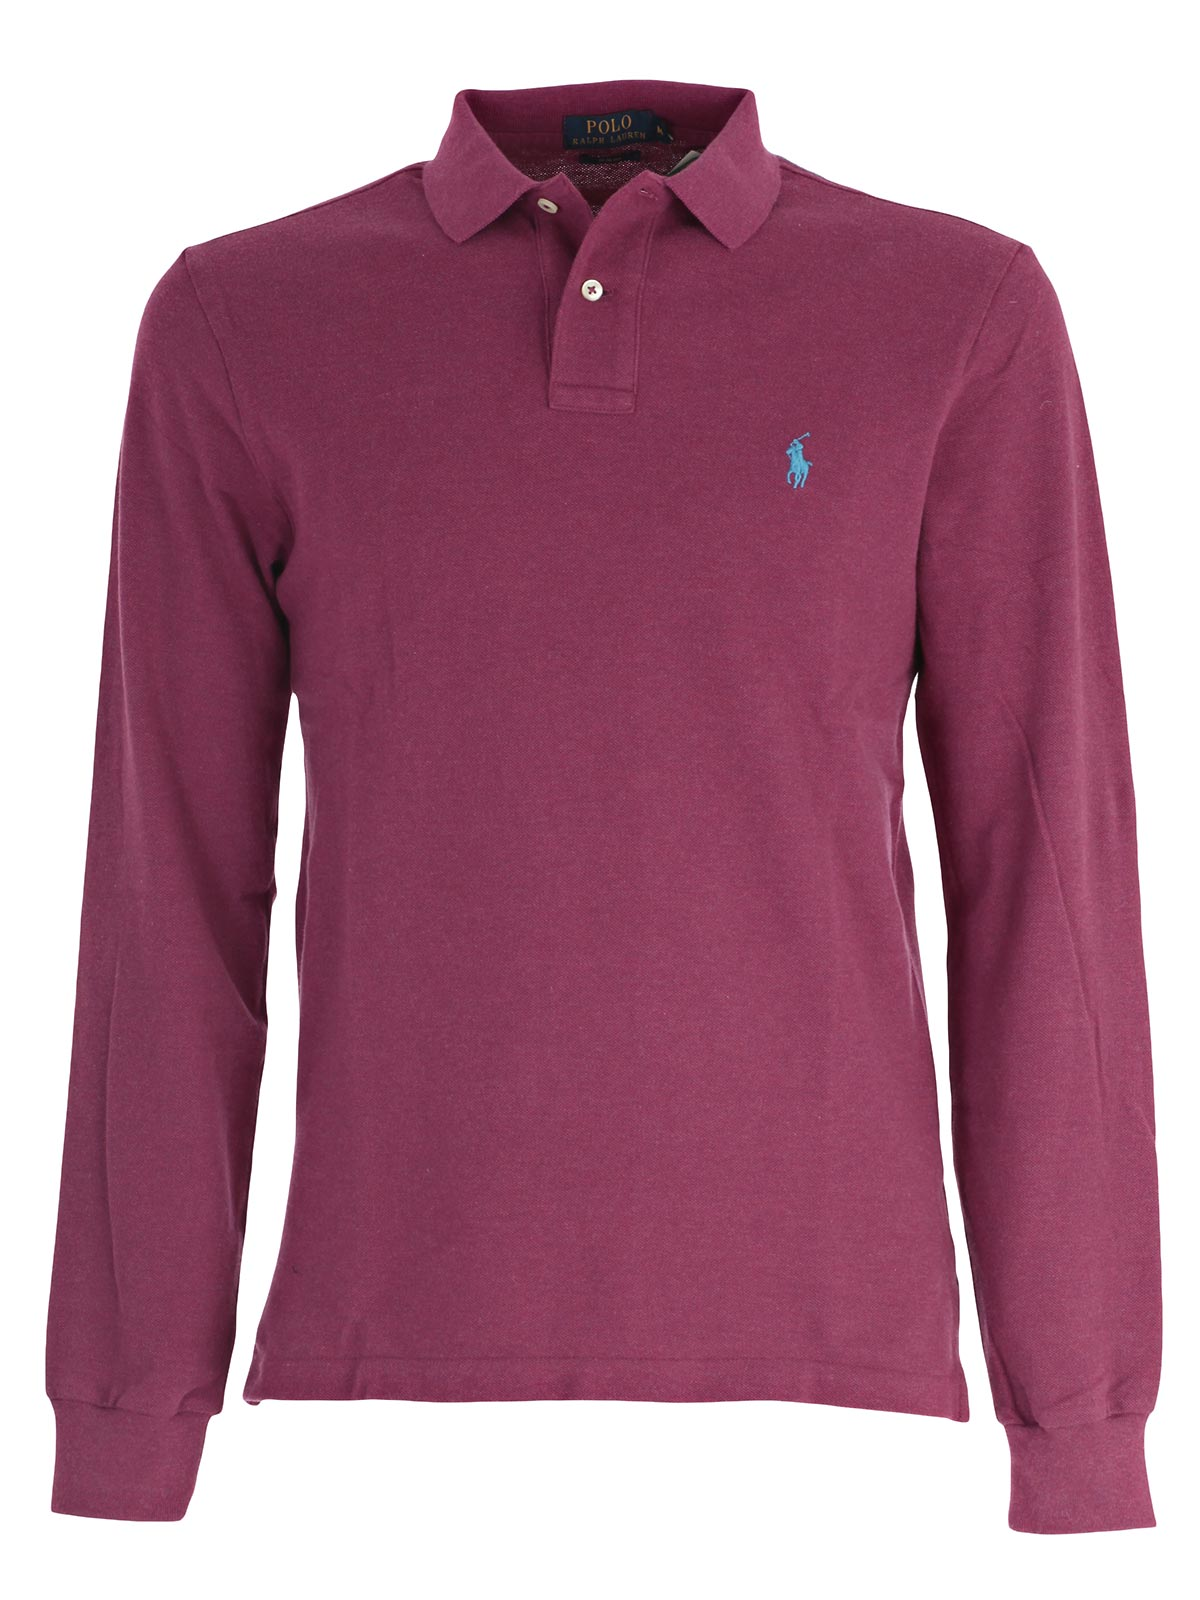 Picture of POLO RALPH LAUREN JERSEY MAGLIA